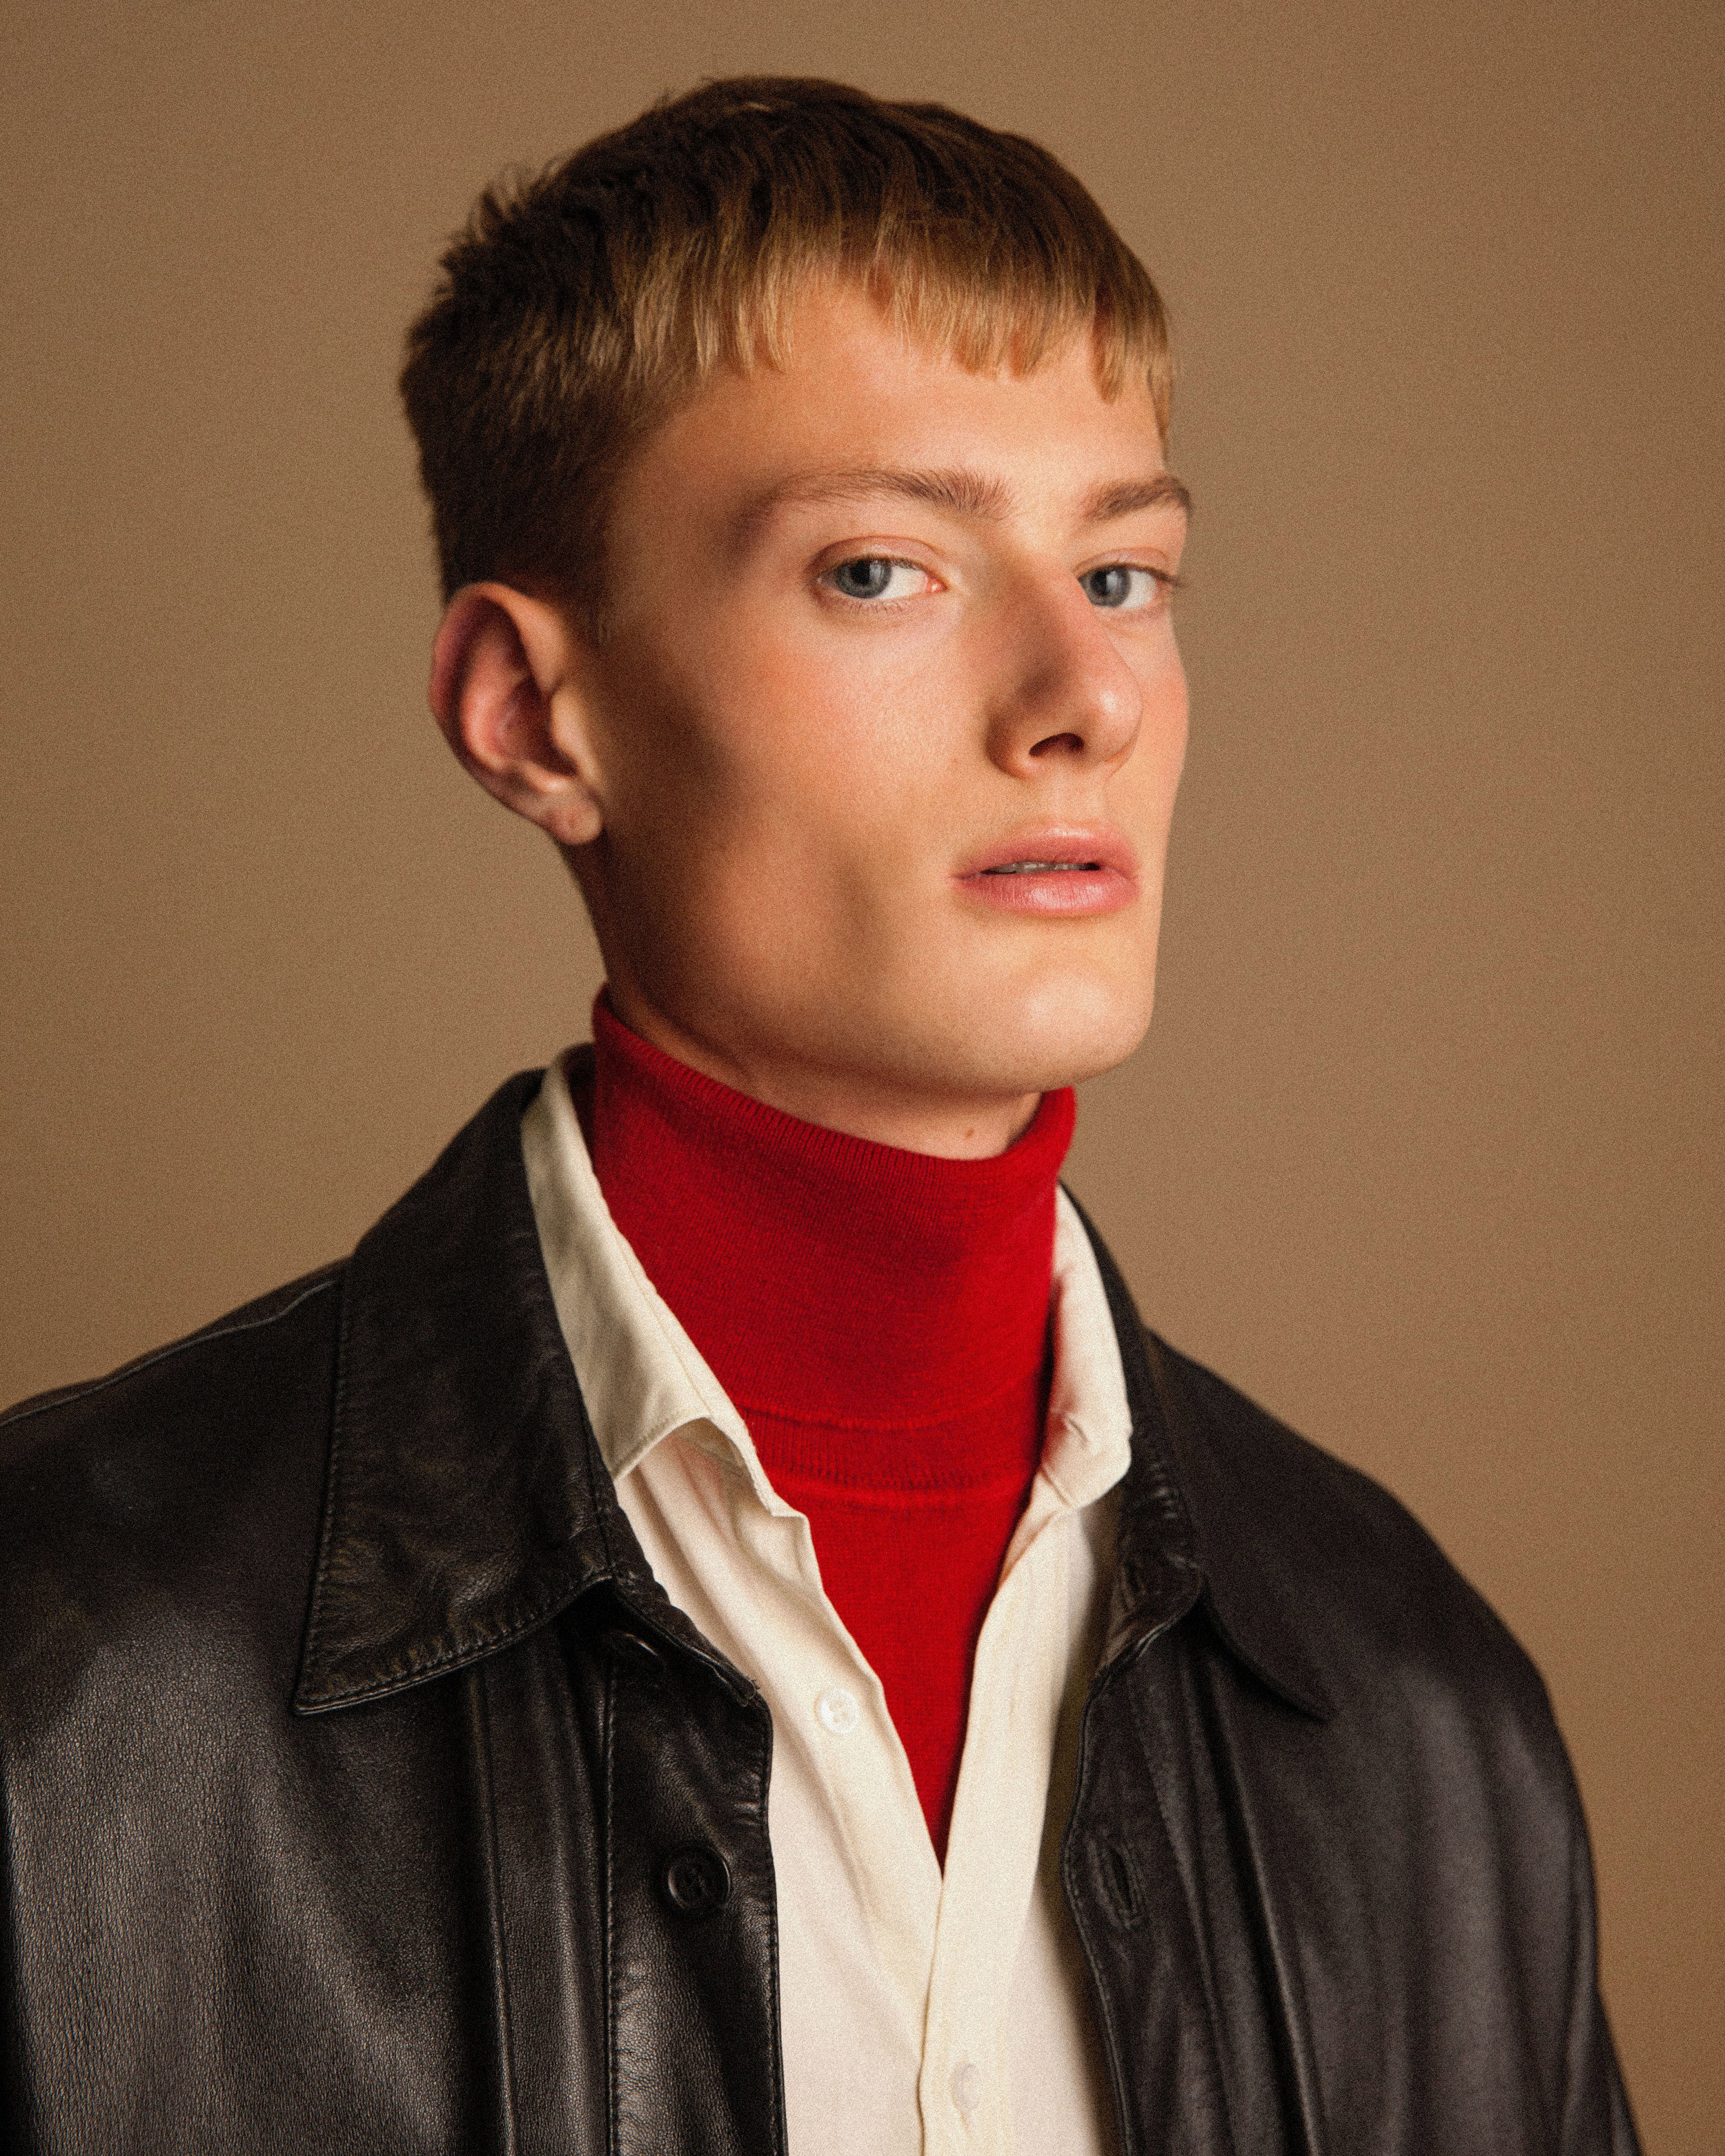 Joshua at Nevs Models